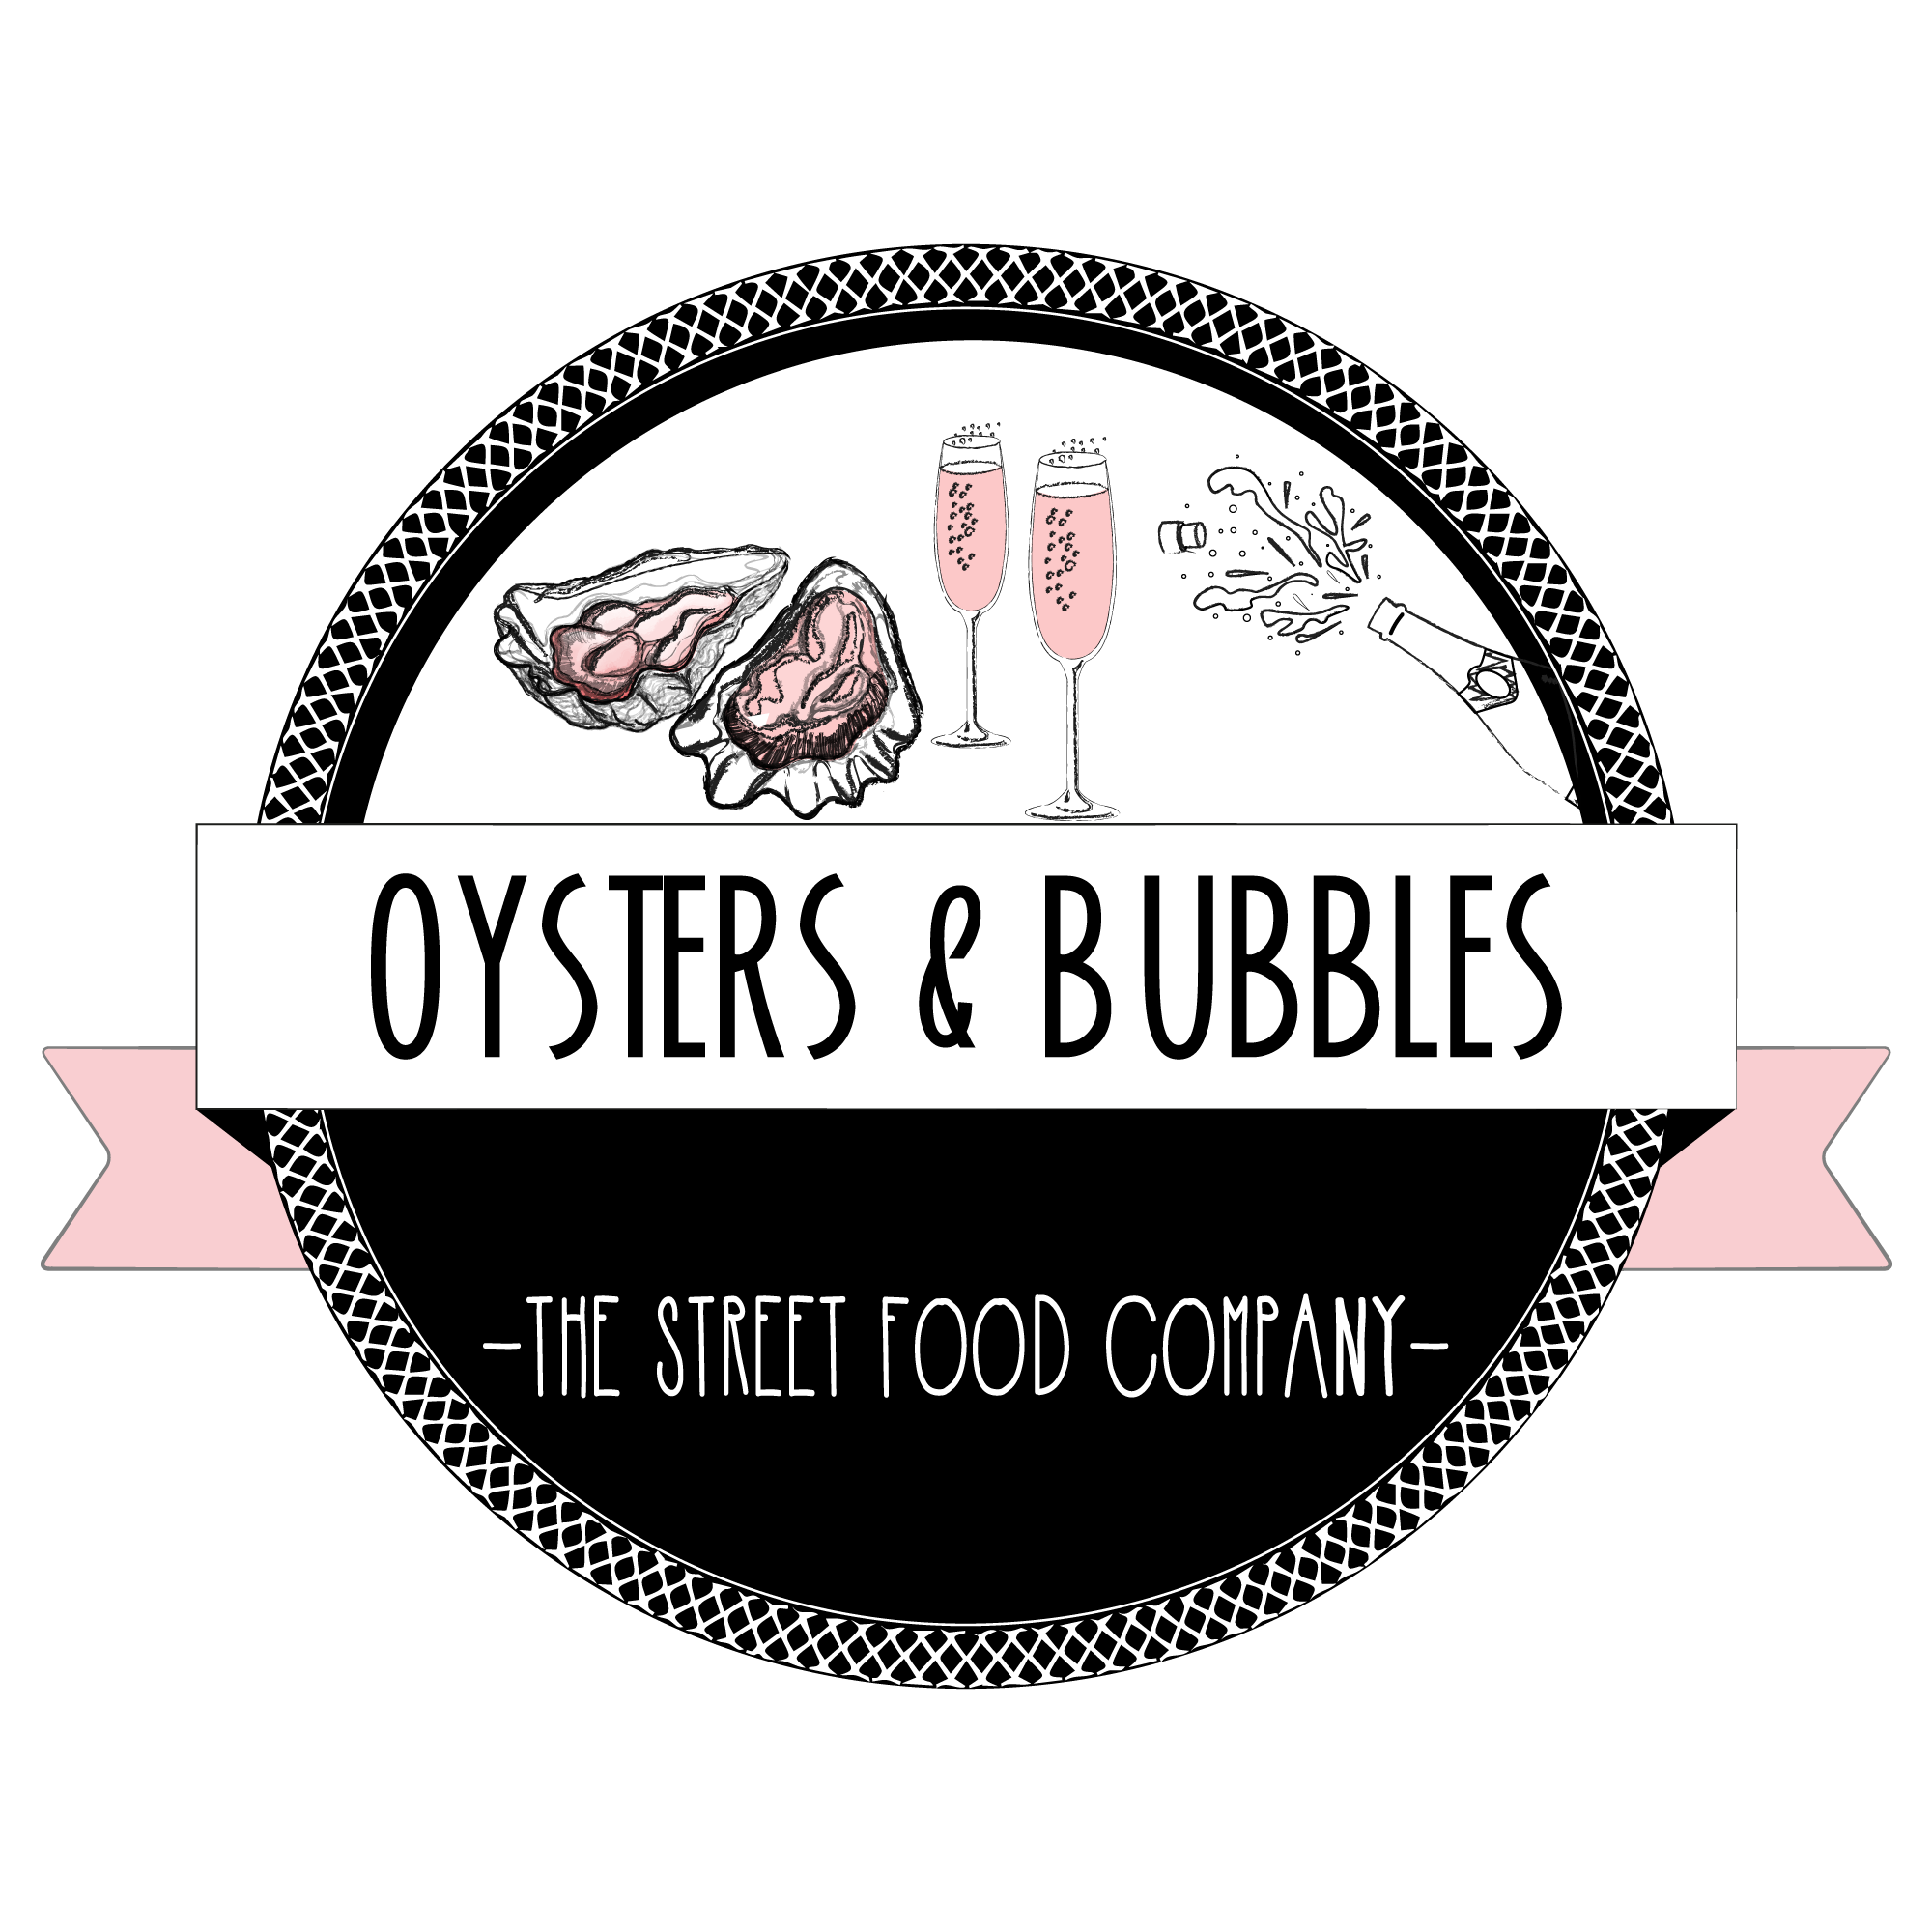 Oysters & Bubbles